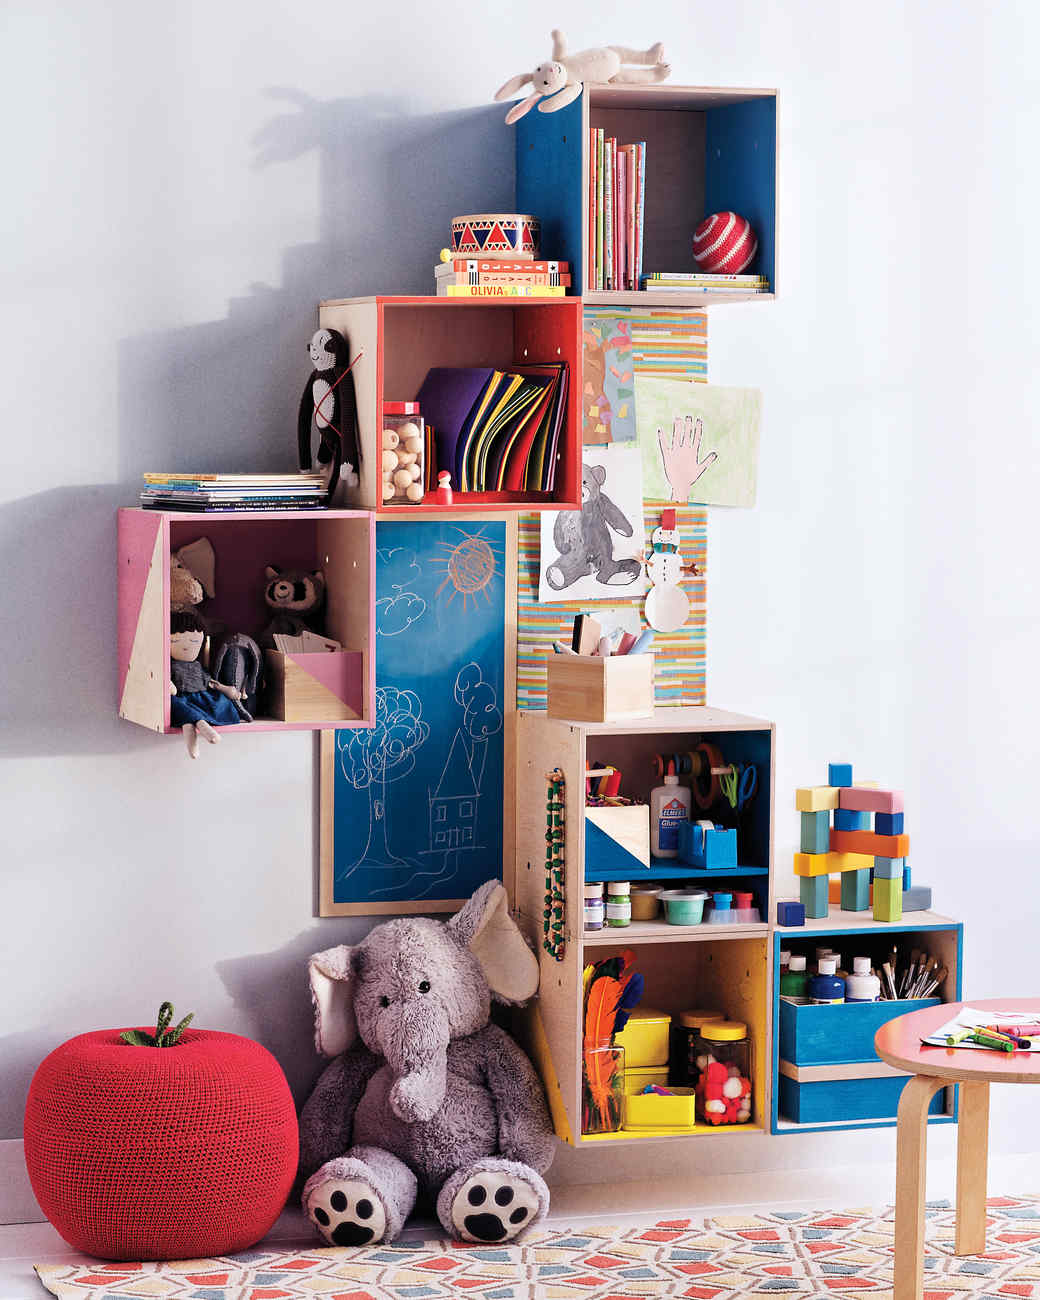 cubbies-storage-kid-area-87-d111635.jpg